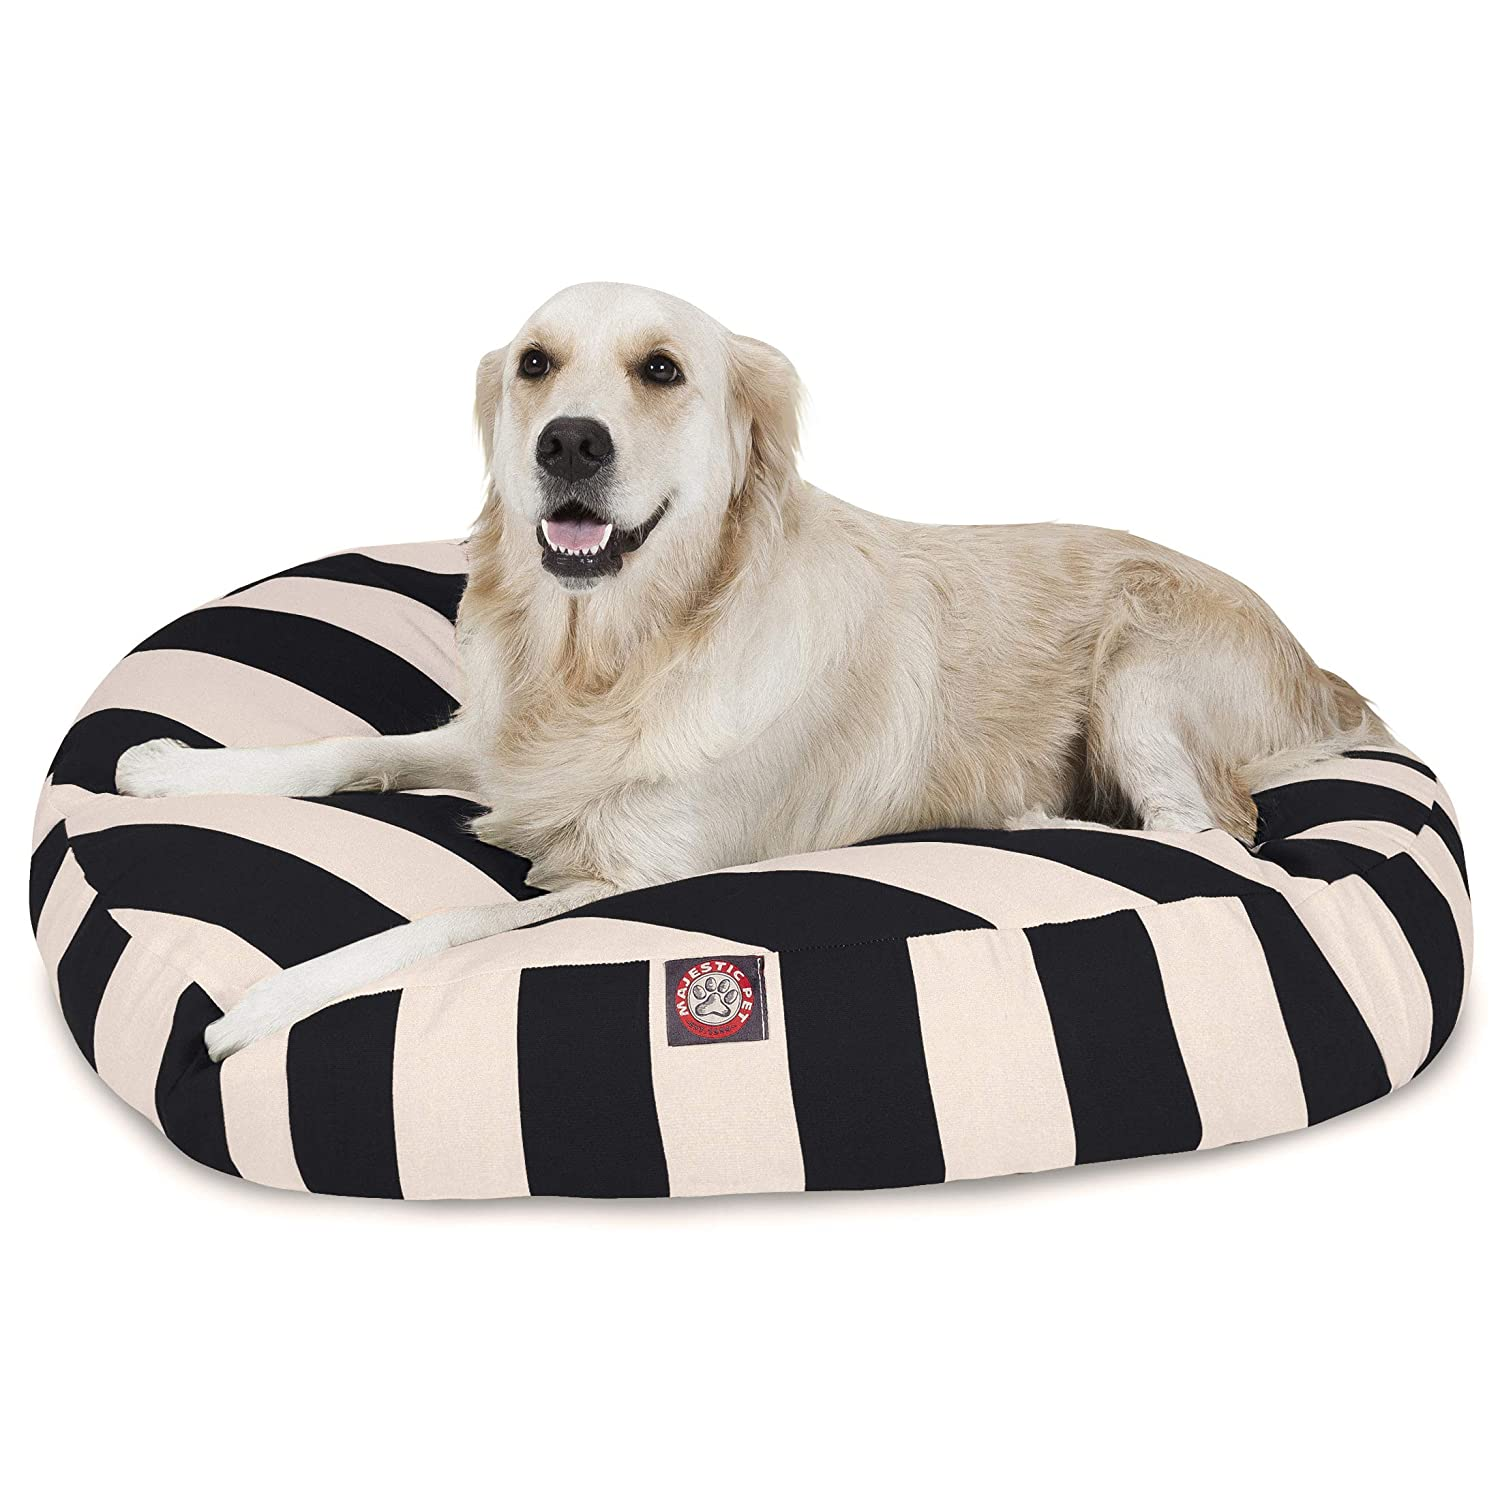 Black greenical Stripe Large Round Indoor Outdoor Pet Dog Bed with Removable Washable Cover by Majestic Pet Products